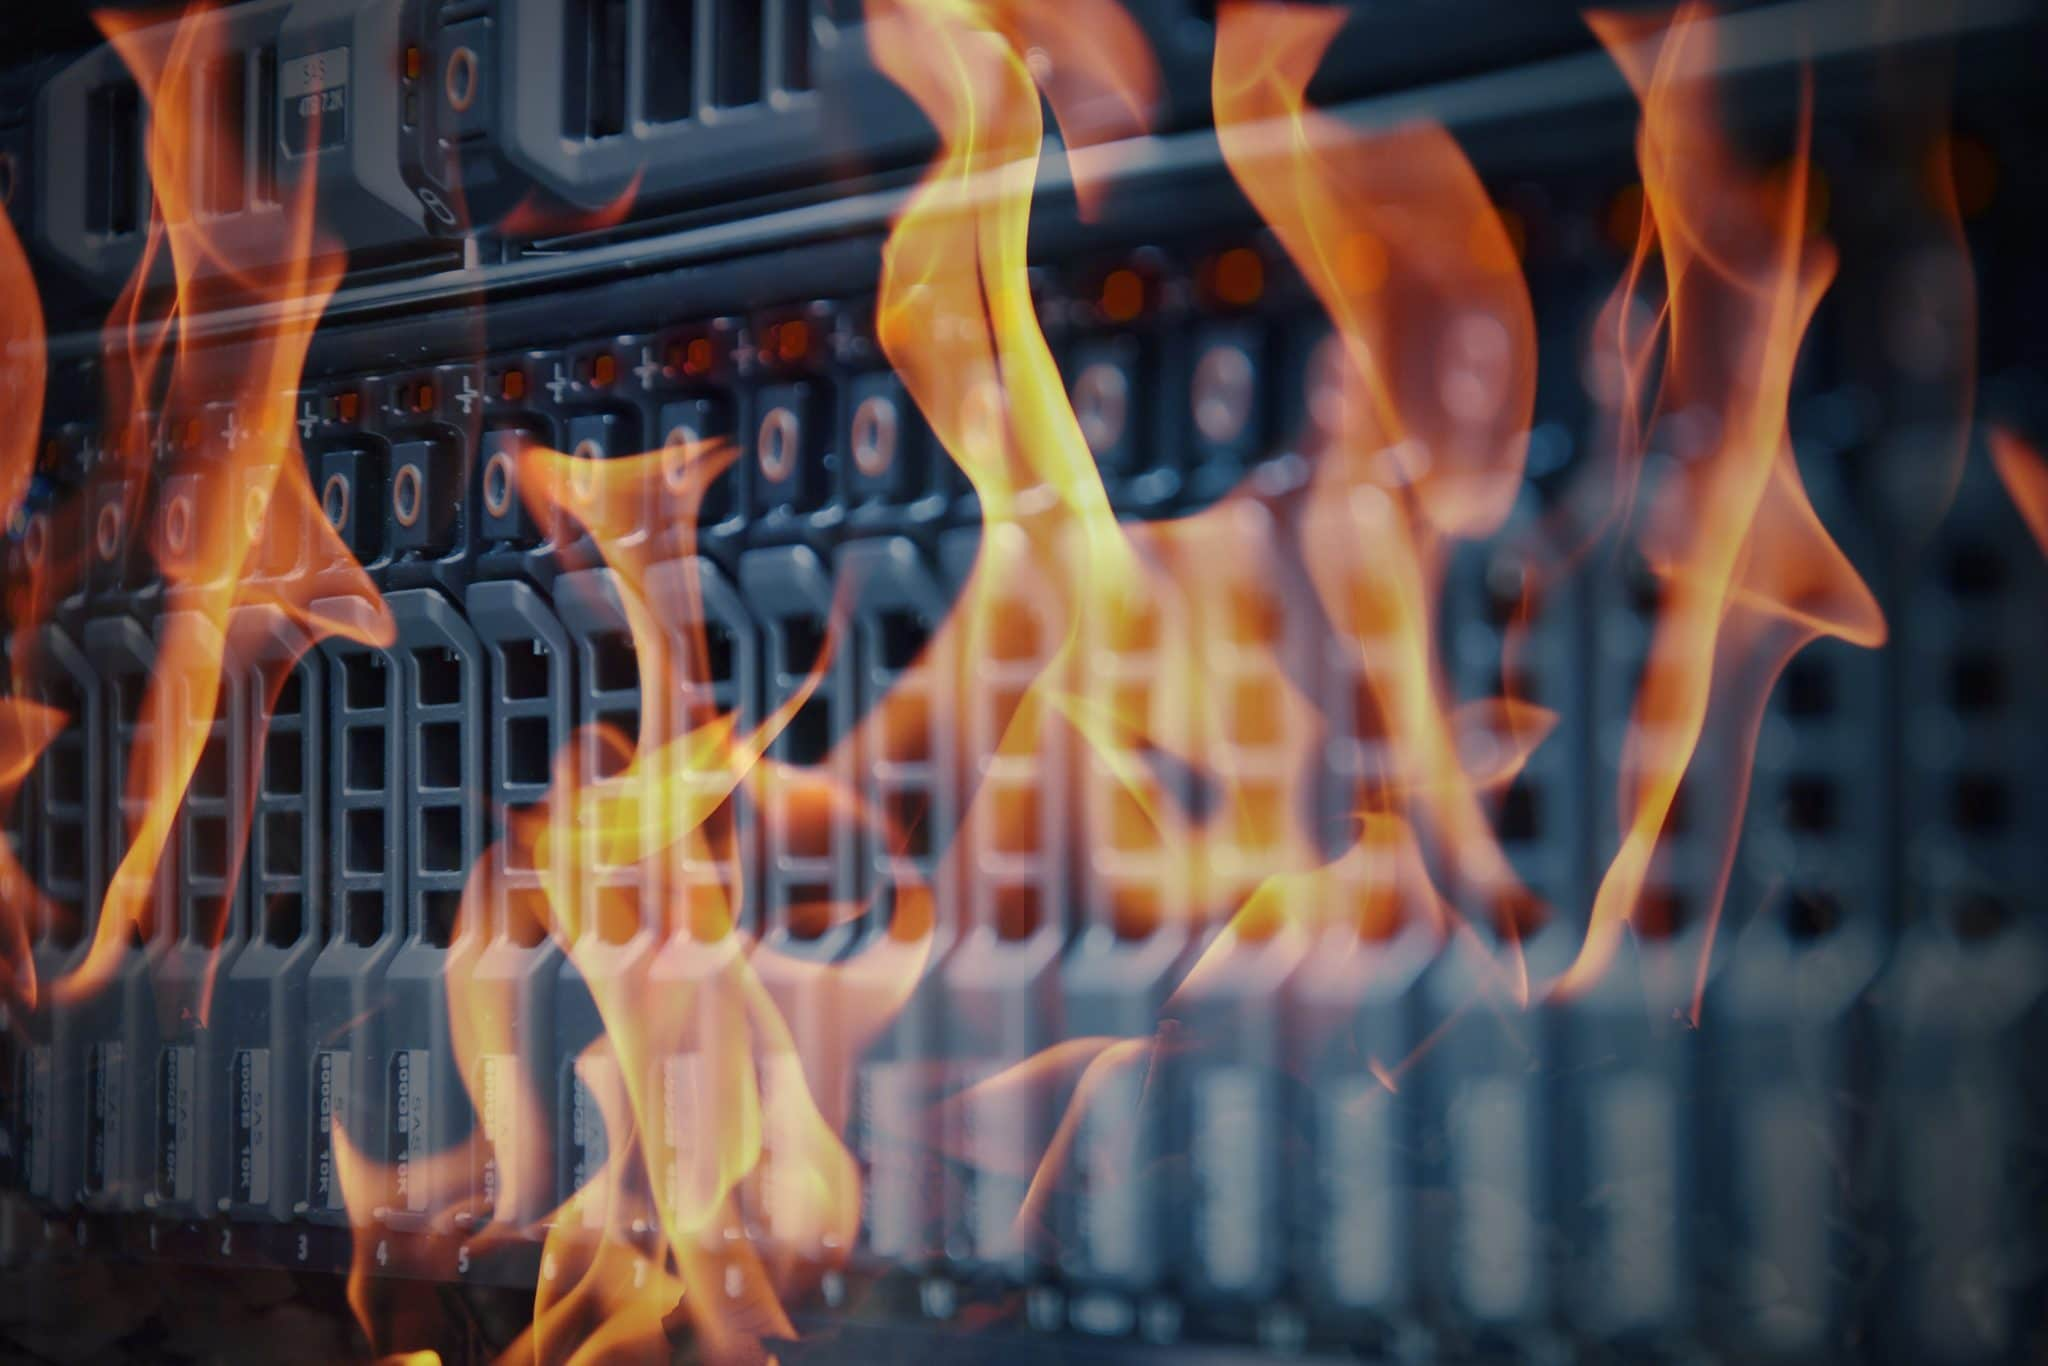 Transcendent disaster recovery and backup or DRaaS cloud